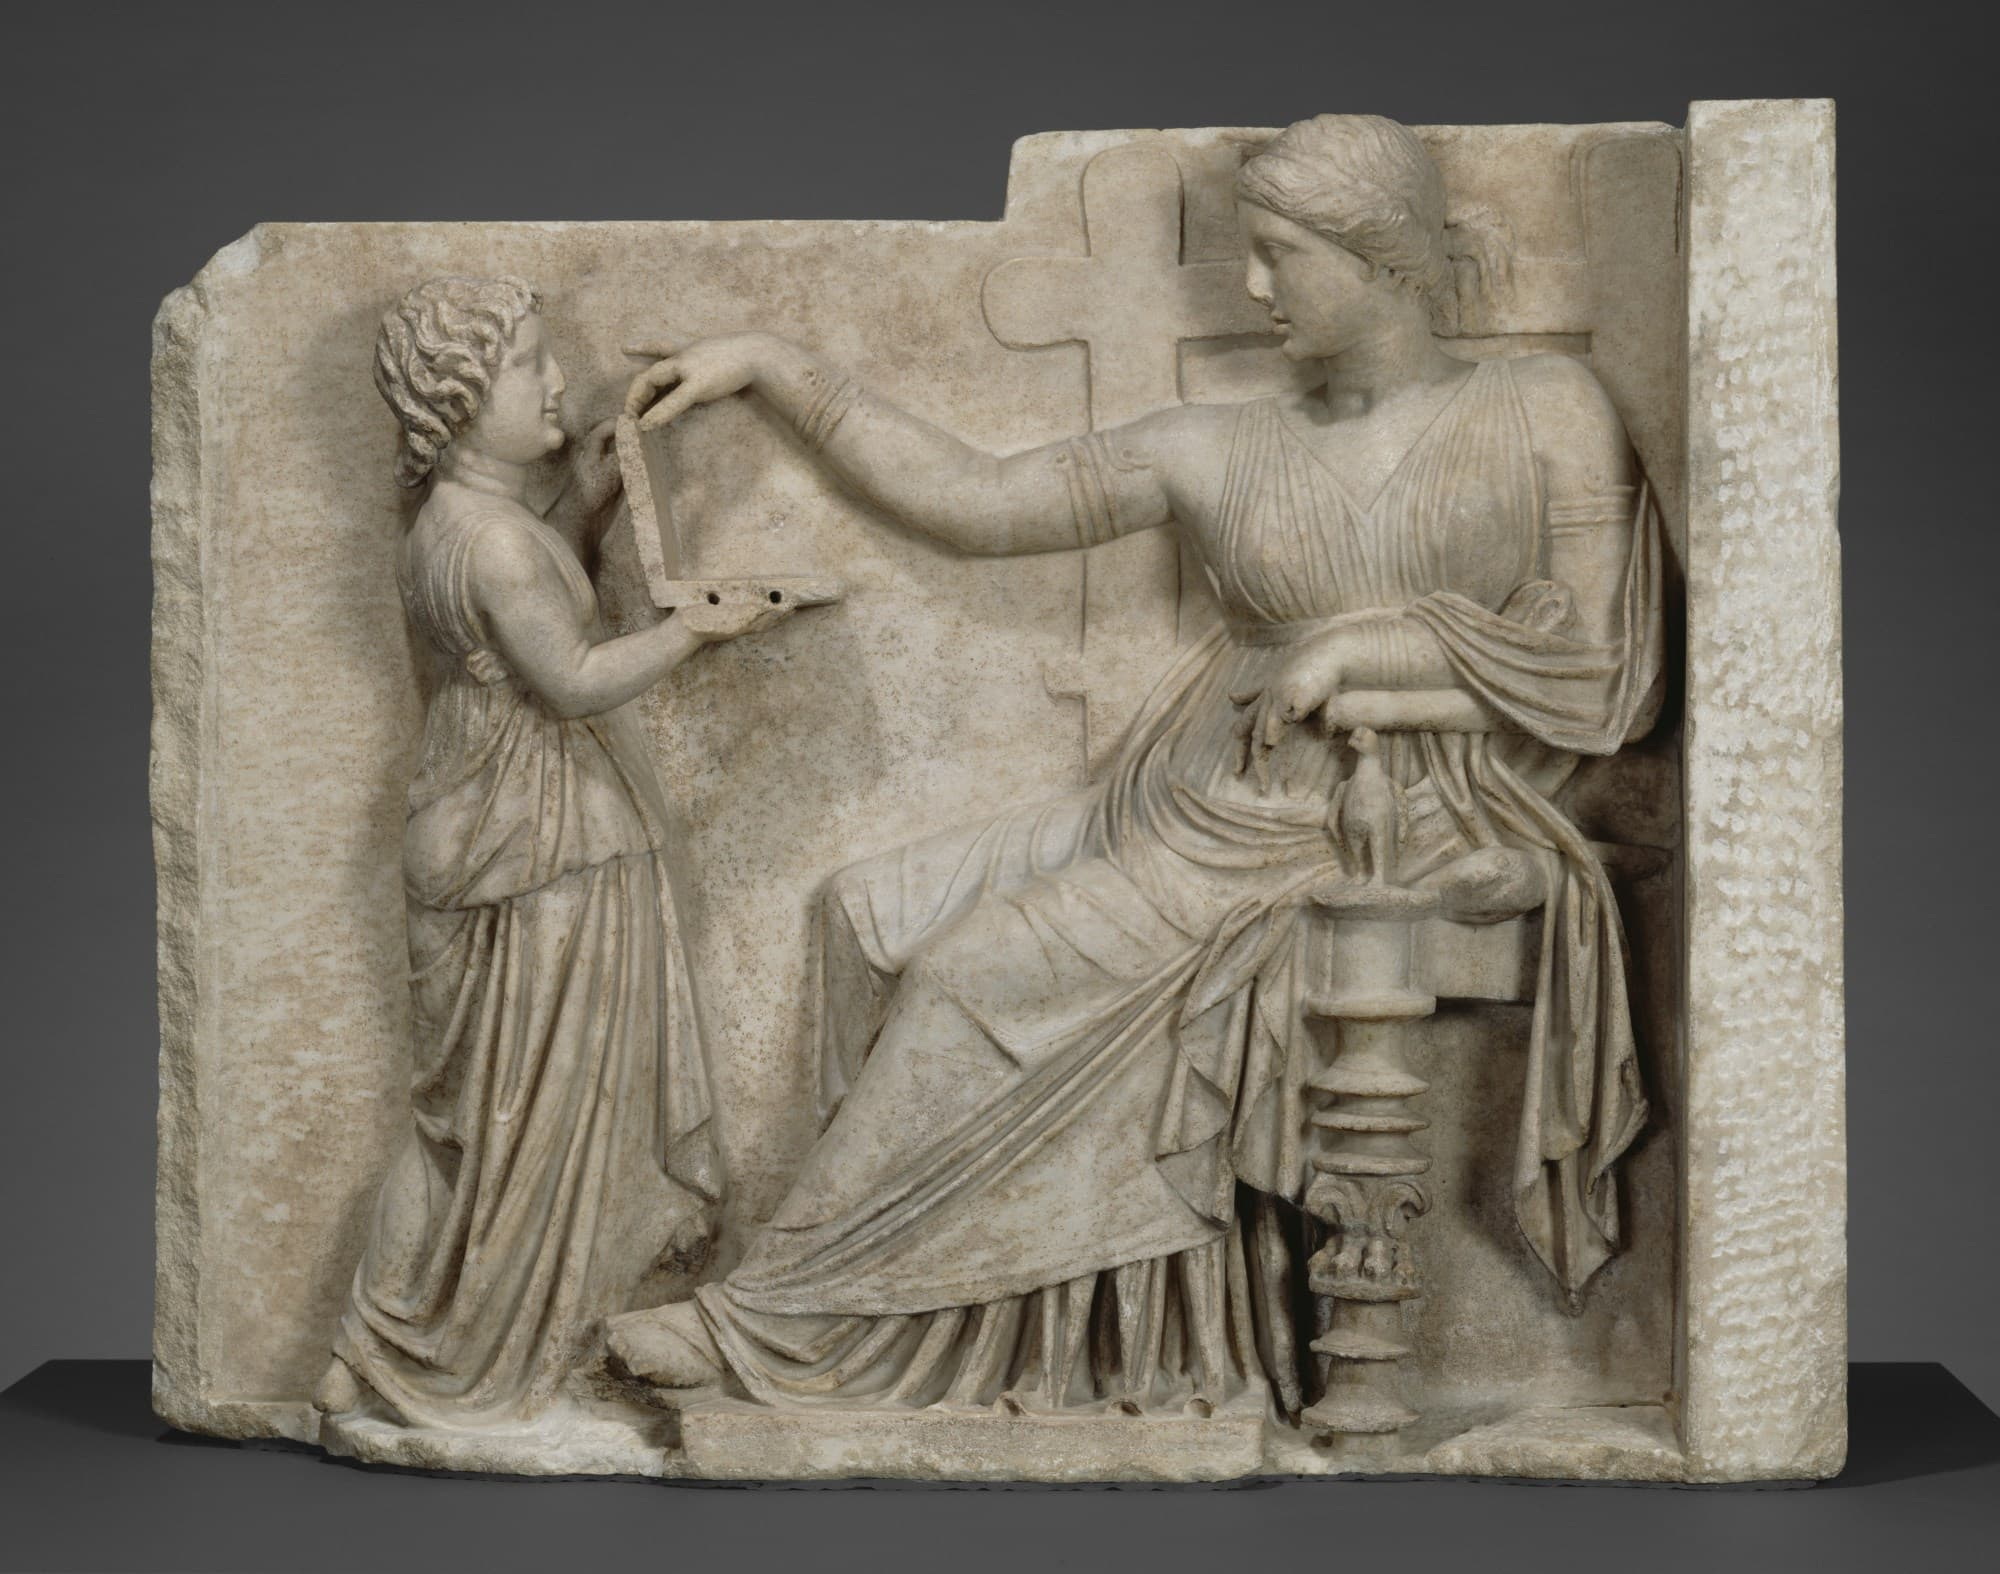 Grave Relief of an Enthroned Woman with an Attendant. (Digital image courtesy of the Getty's Open Content Program.)